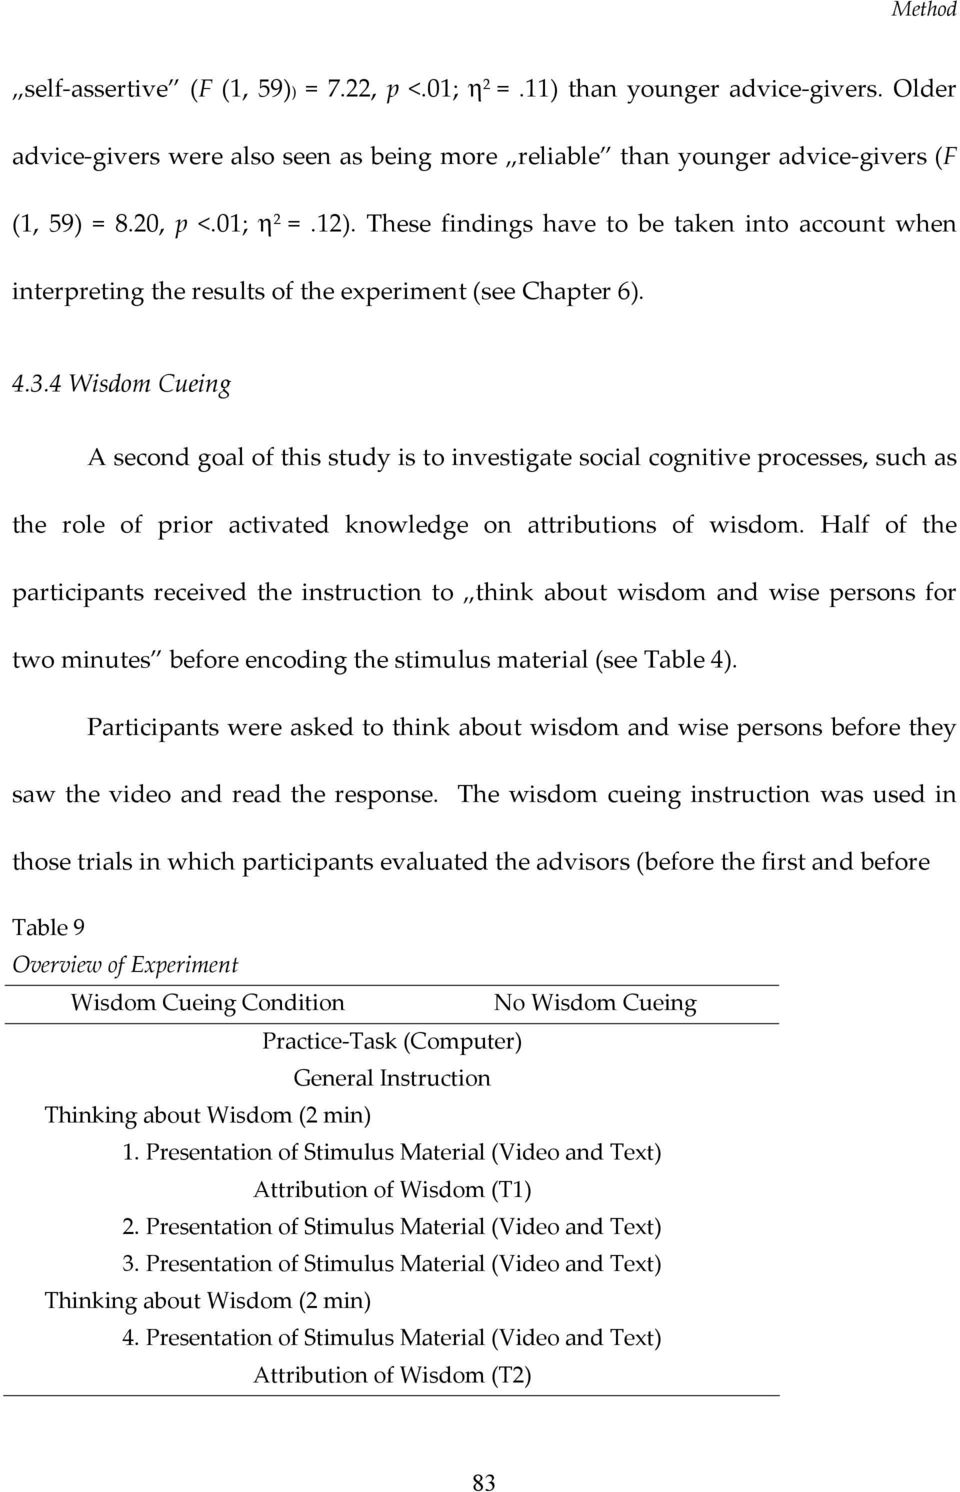 4 Wisdom Cueing A second goal of this study is to investigate social cognitive processes, such as the role of prior activated knowledge on attributions of wisdom.